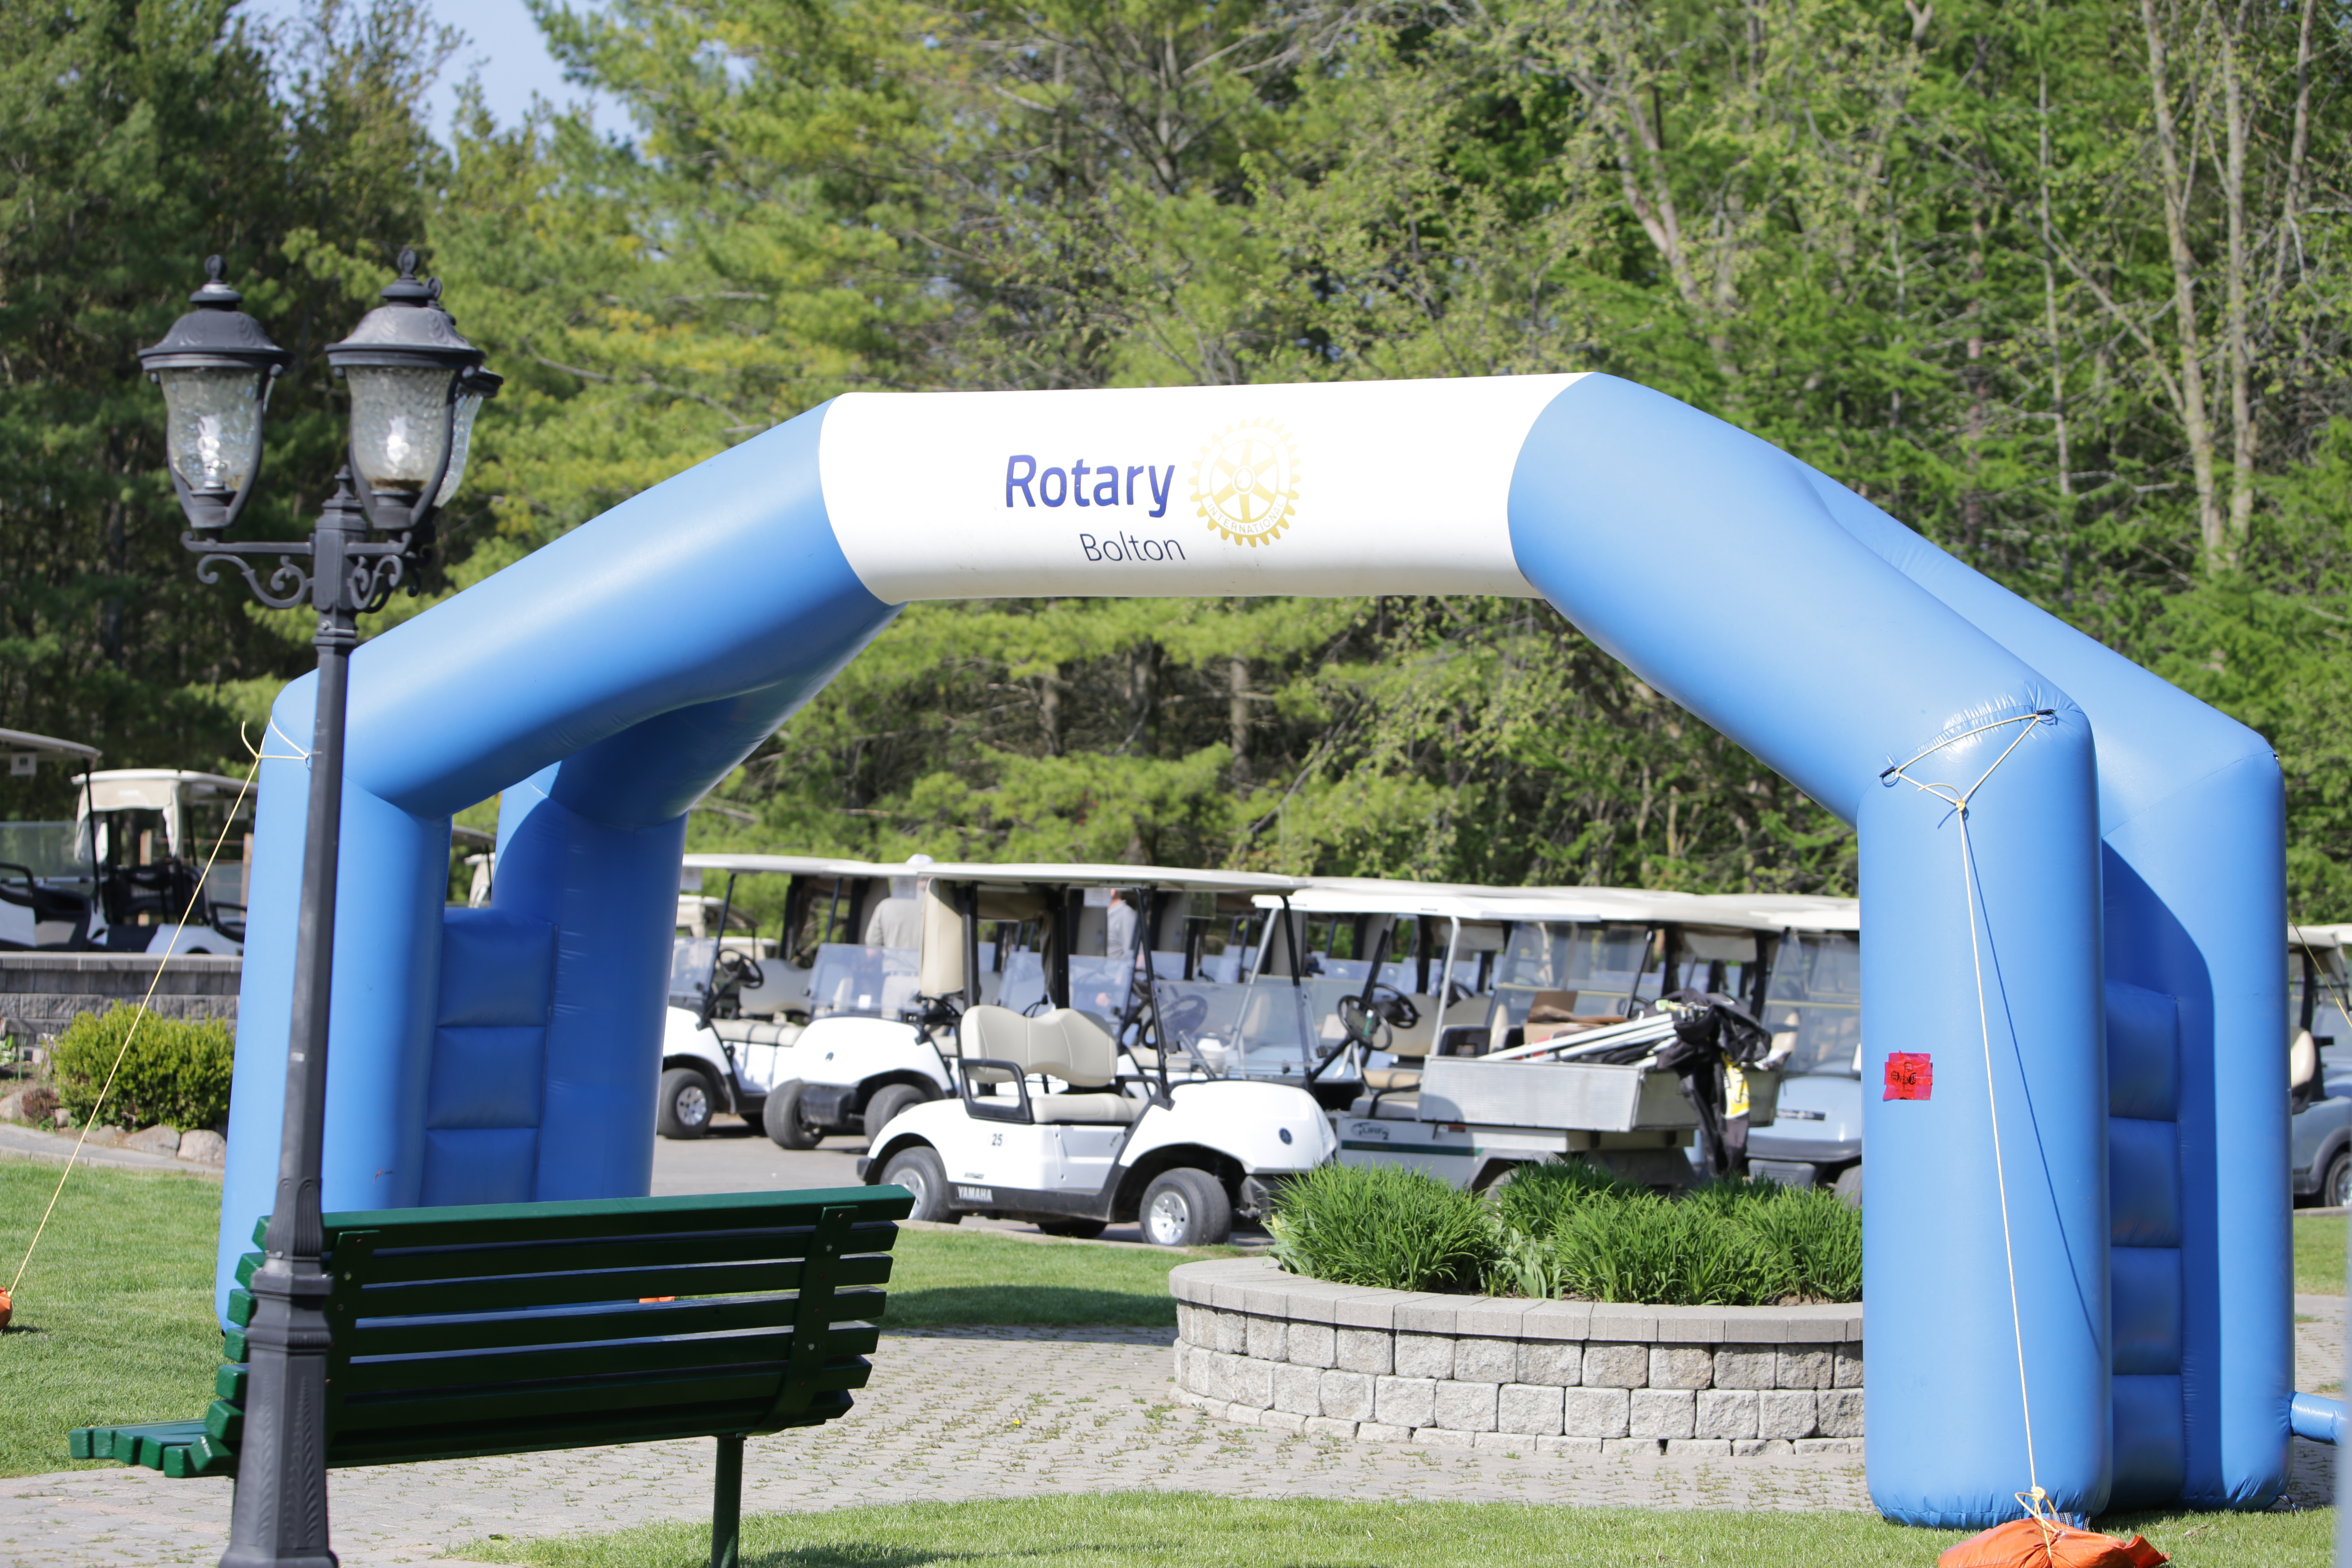 2019 Bolton Rotary Early Bird Golf Classic gallery image #31